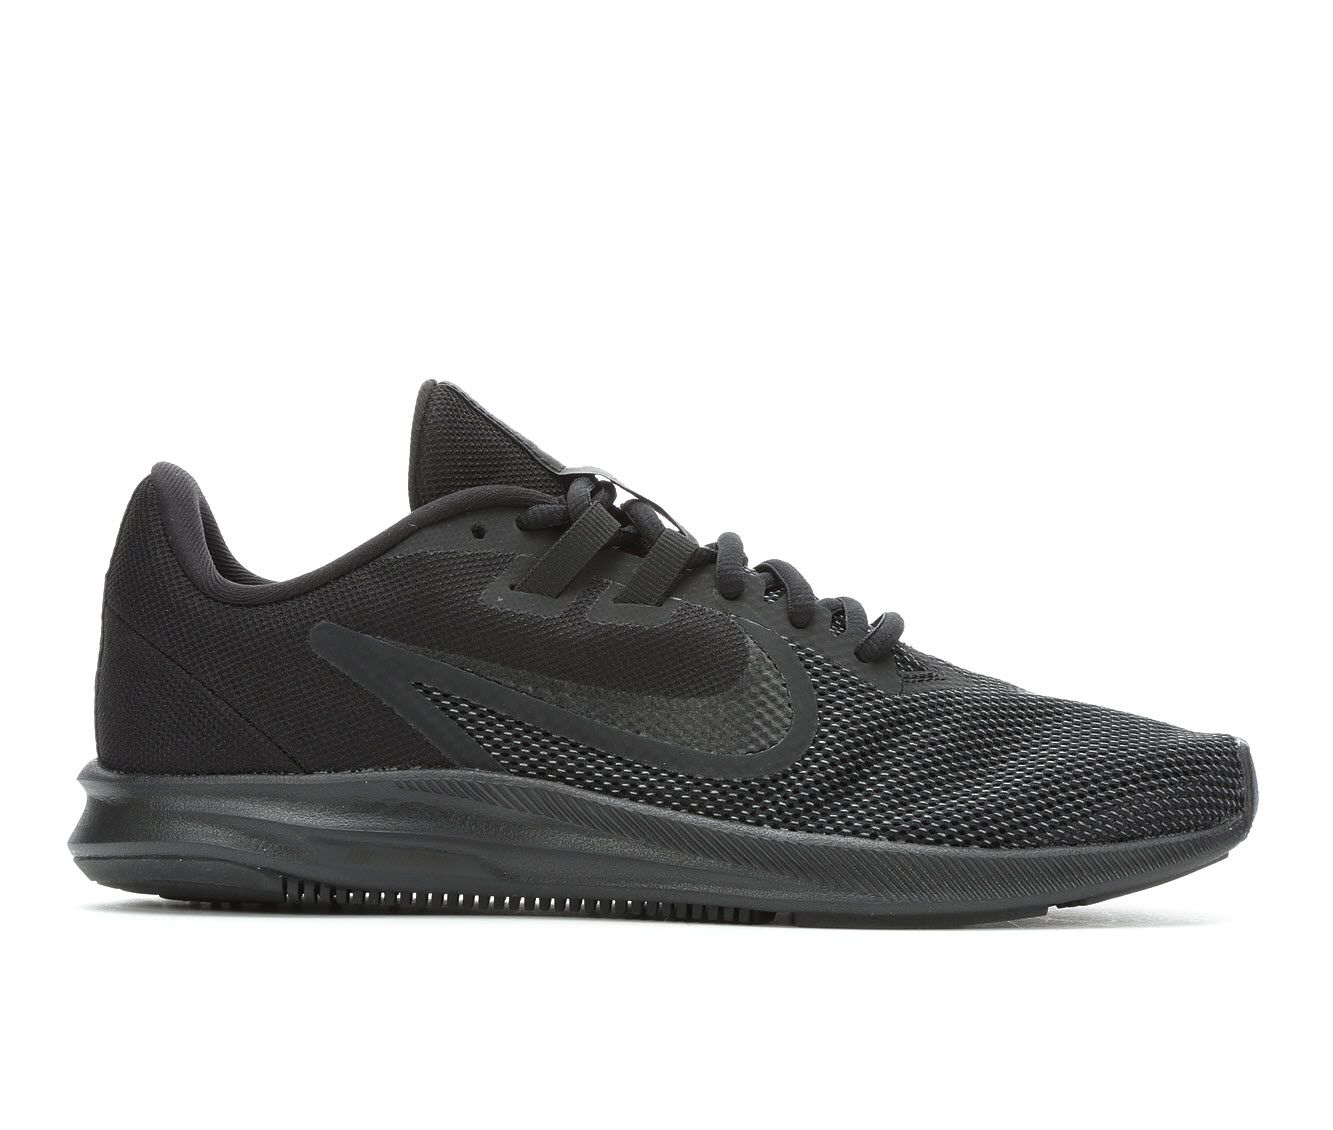 Nike Downshifter 9 Women's Athletic Shoe (Black)